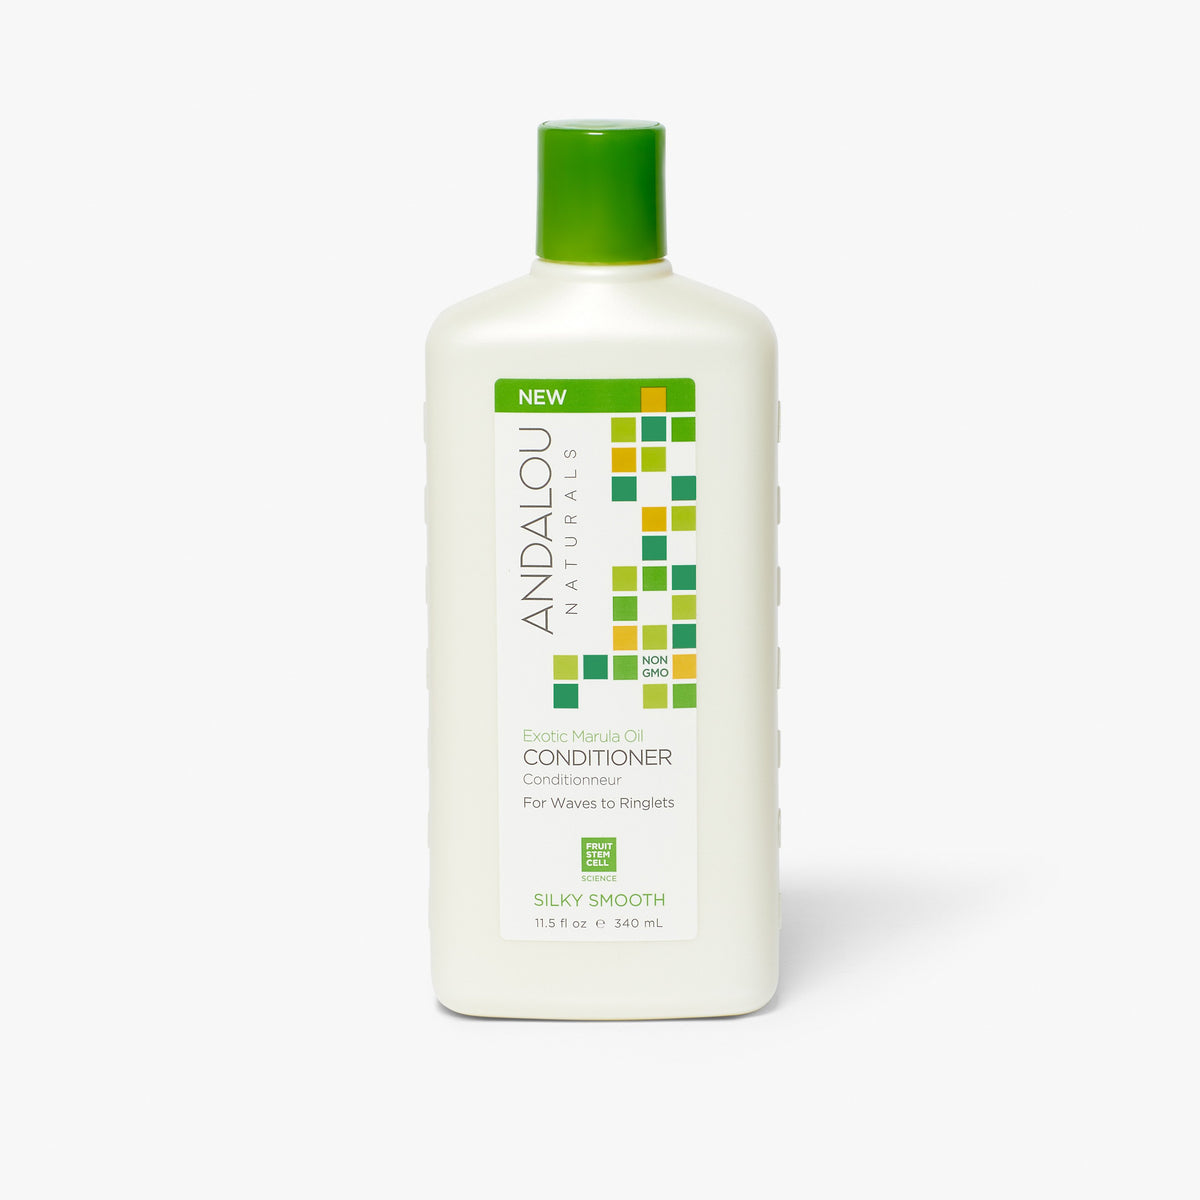 Andalou Naturals Exotic Marula Oil Silky Smooth Conditioner bottle